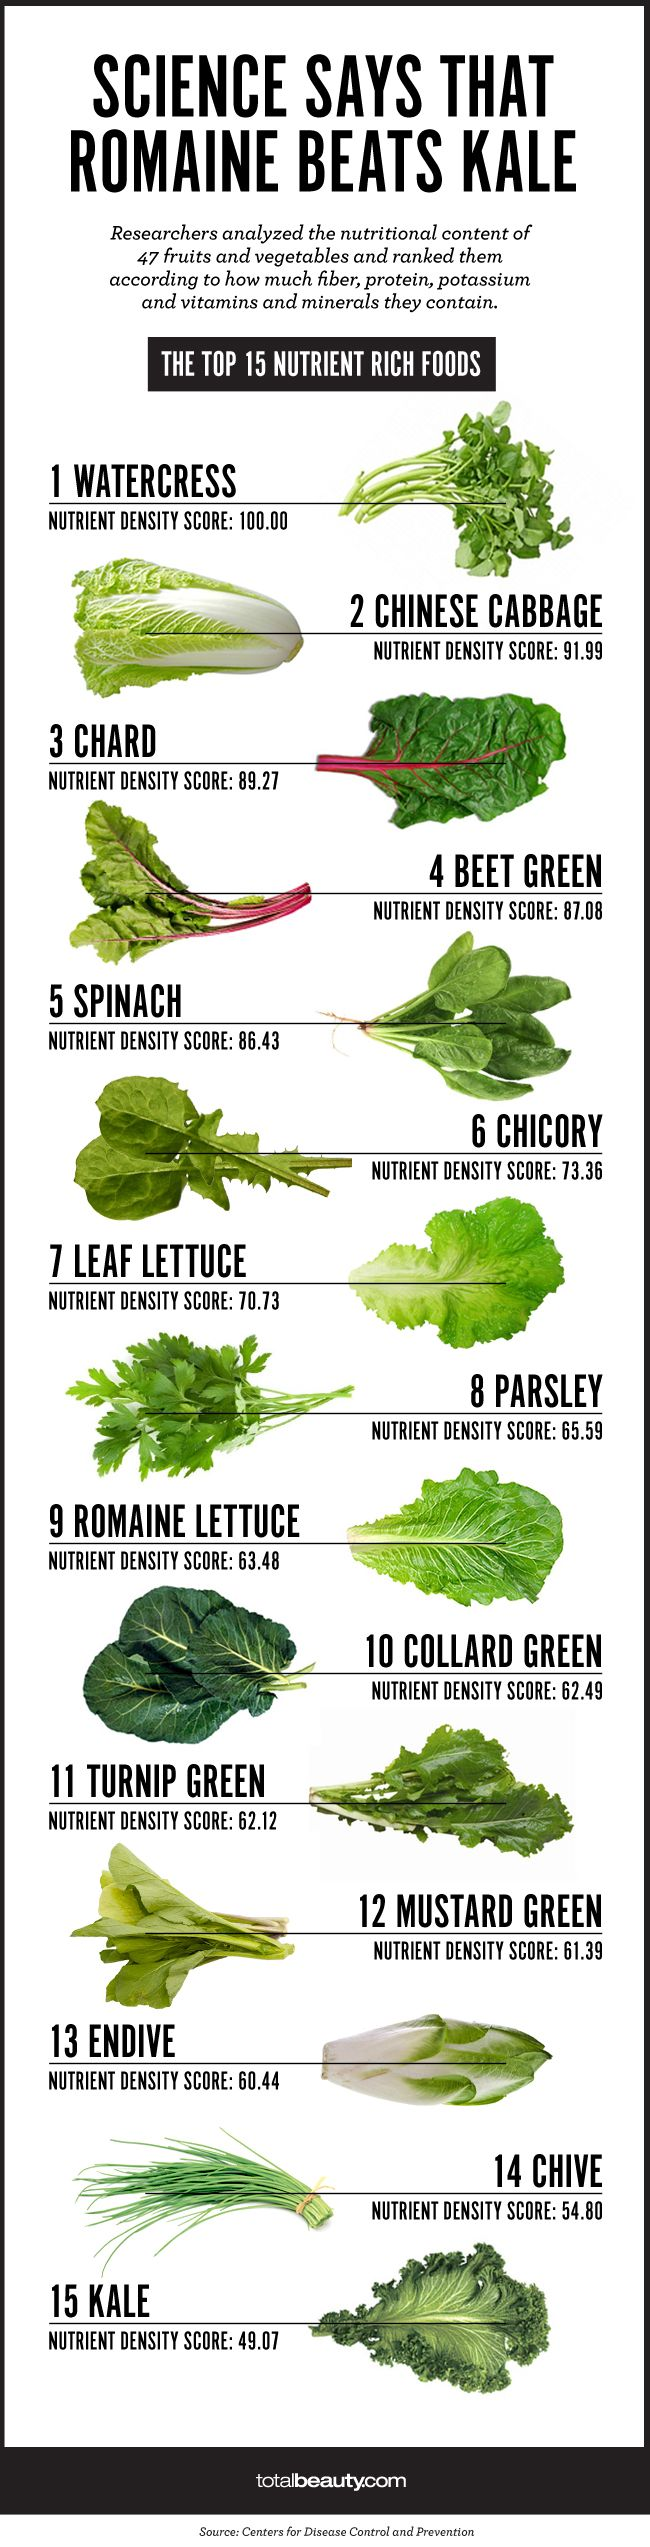 6 Shocking Reasons Your Salad Is a Fat Bomb | Pinterest | Salad toppings, Bacon bits and Bacon